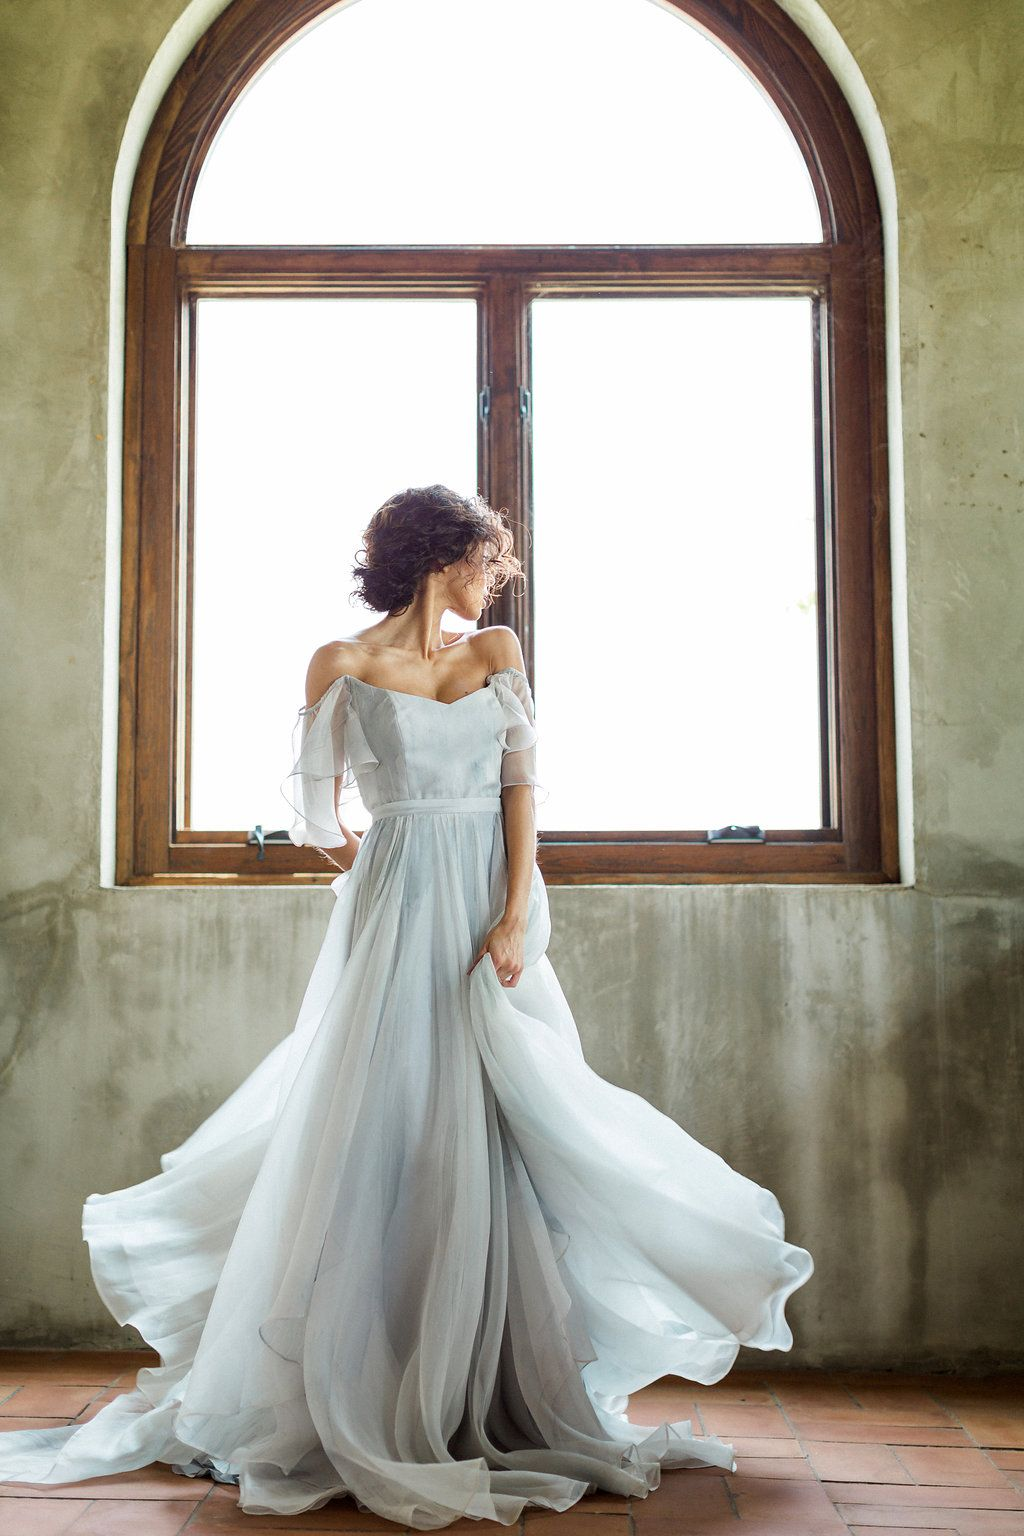 Cloudy Day Wedding Inspiration with a Hand Painted Bridal Gown ...